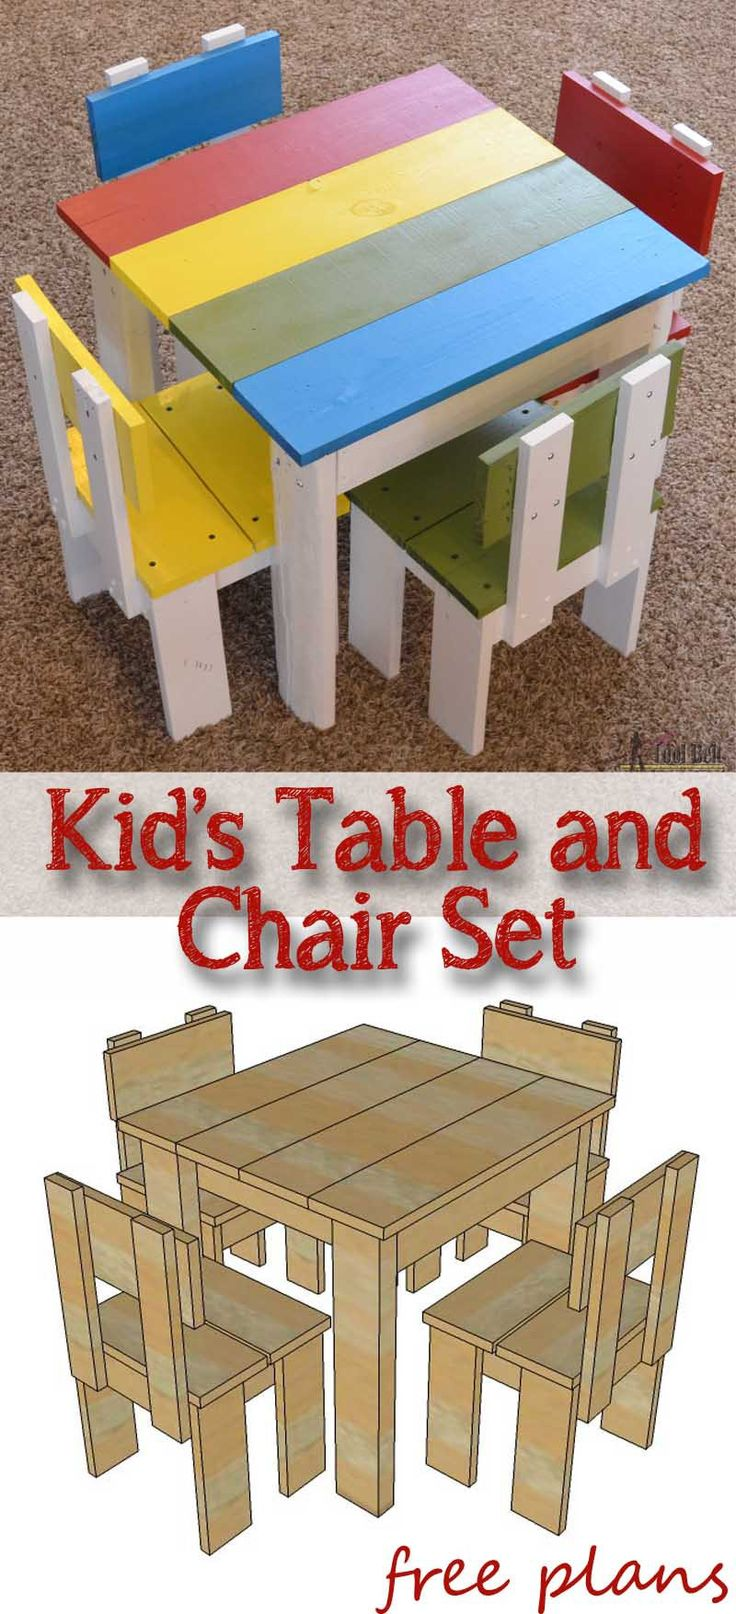 Marvelous Build An Easy Table And Chair Set For The Little Kids. The Set Costs About